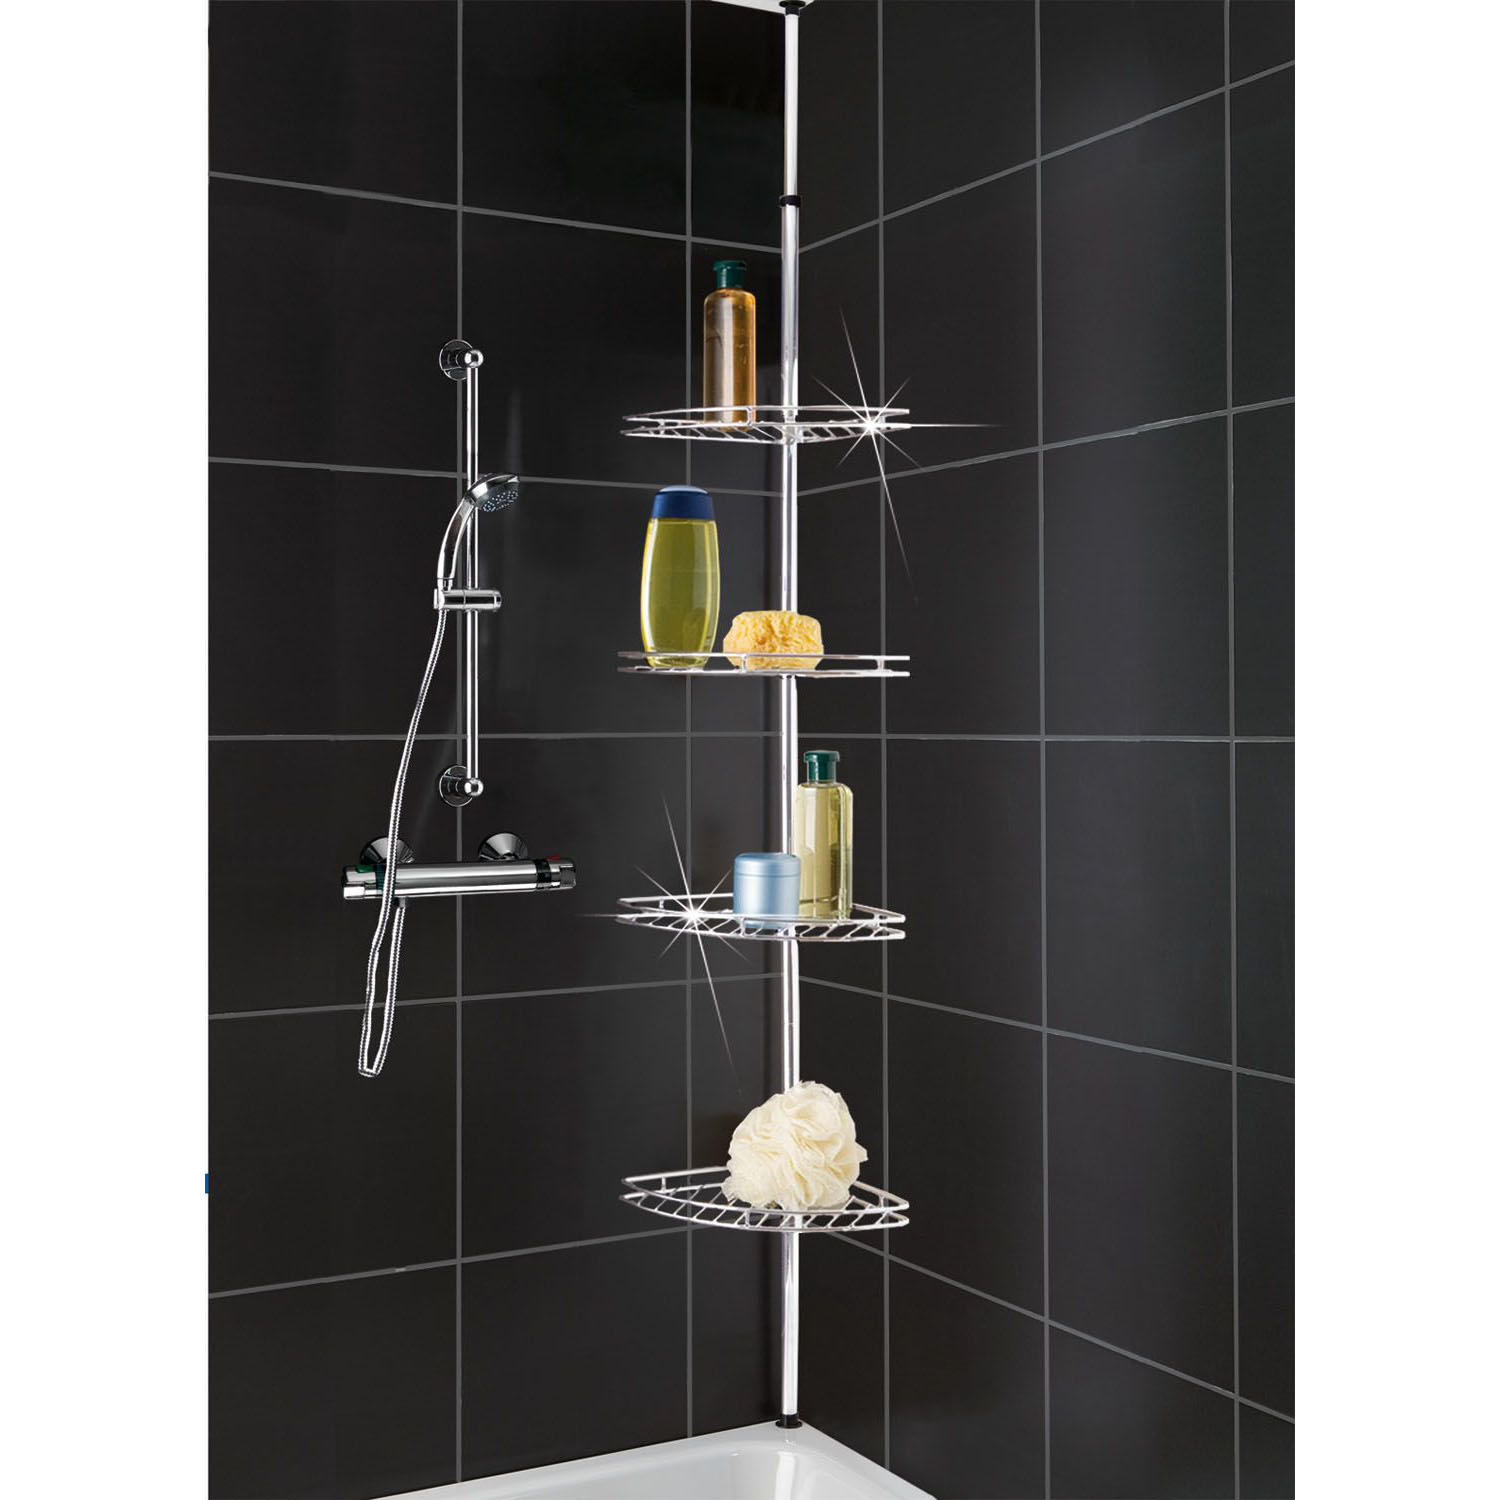 metal corner shower bathroom basket caddy shelf telescopic storage shelves tier ebay. Black Bedroom Furniture Sets. Home Design Ideas